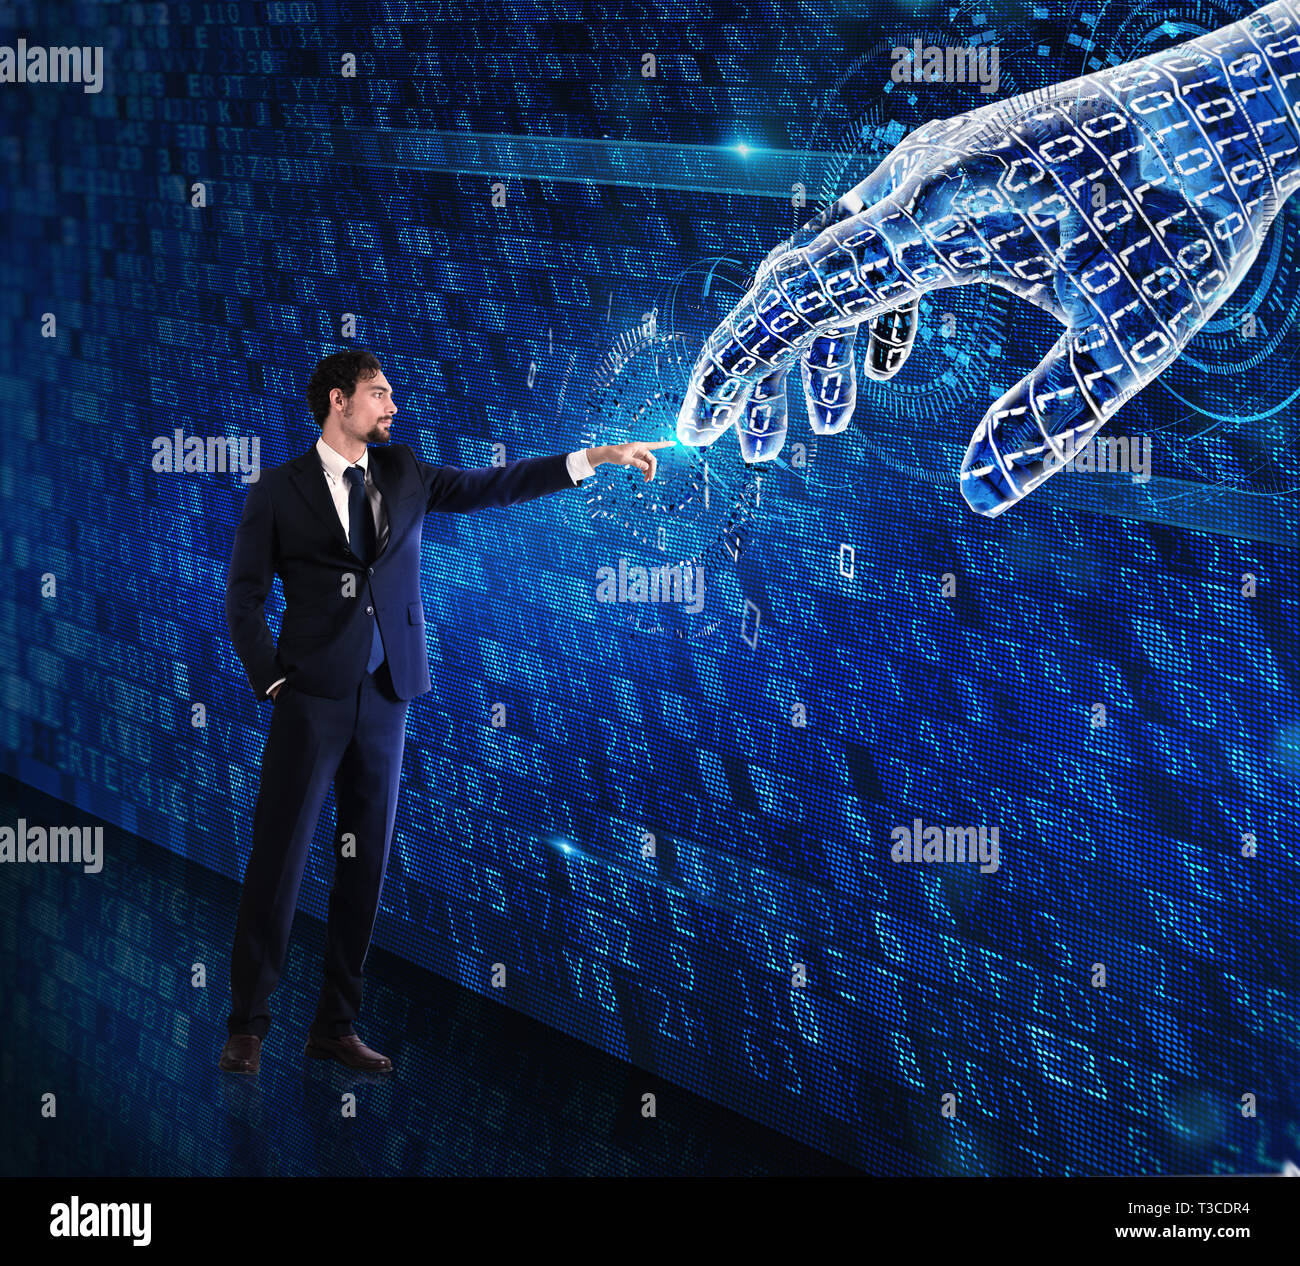 Man machine interaction between human and a digital hand - Stock Image